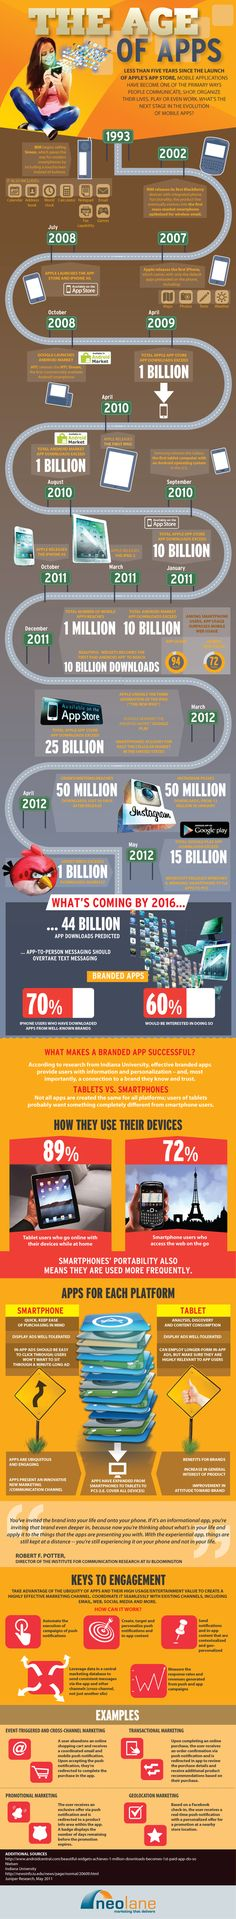 The Age of Apps: Evolution of the Mobile Application [Infographic] by Neolane, Inc. via slideshare Mobile Marketing, Marketing Digital, Media Marketing, Online Marketing, Content Marketing, Internet Marketing, Marketing Poster, Marketing Communications, Social Marketing